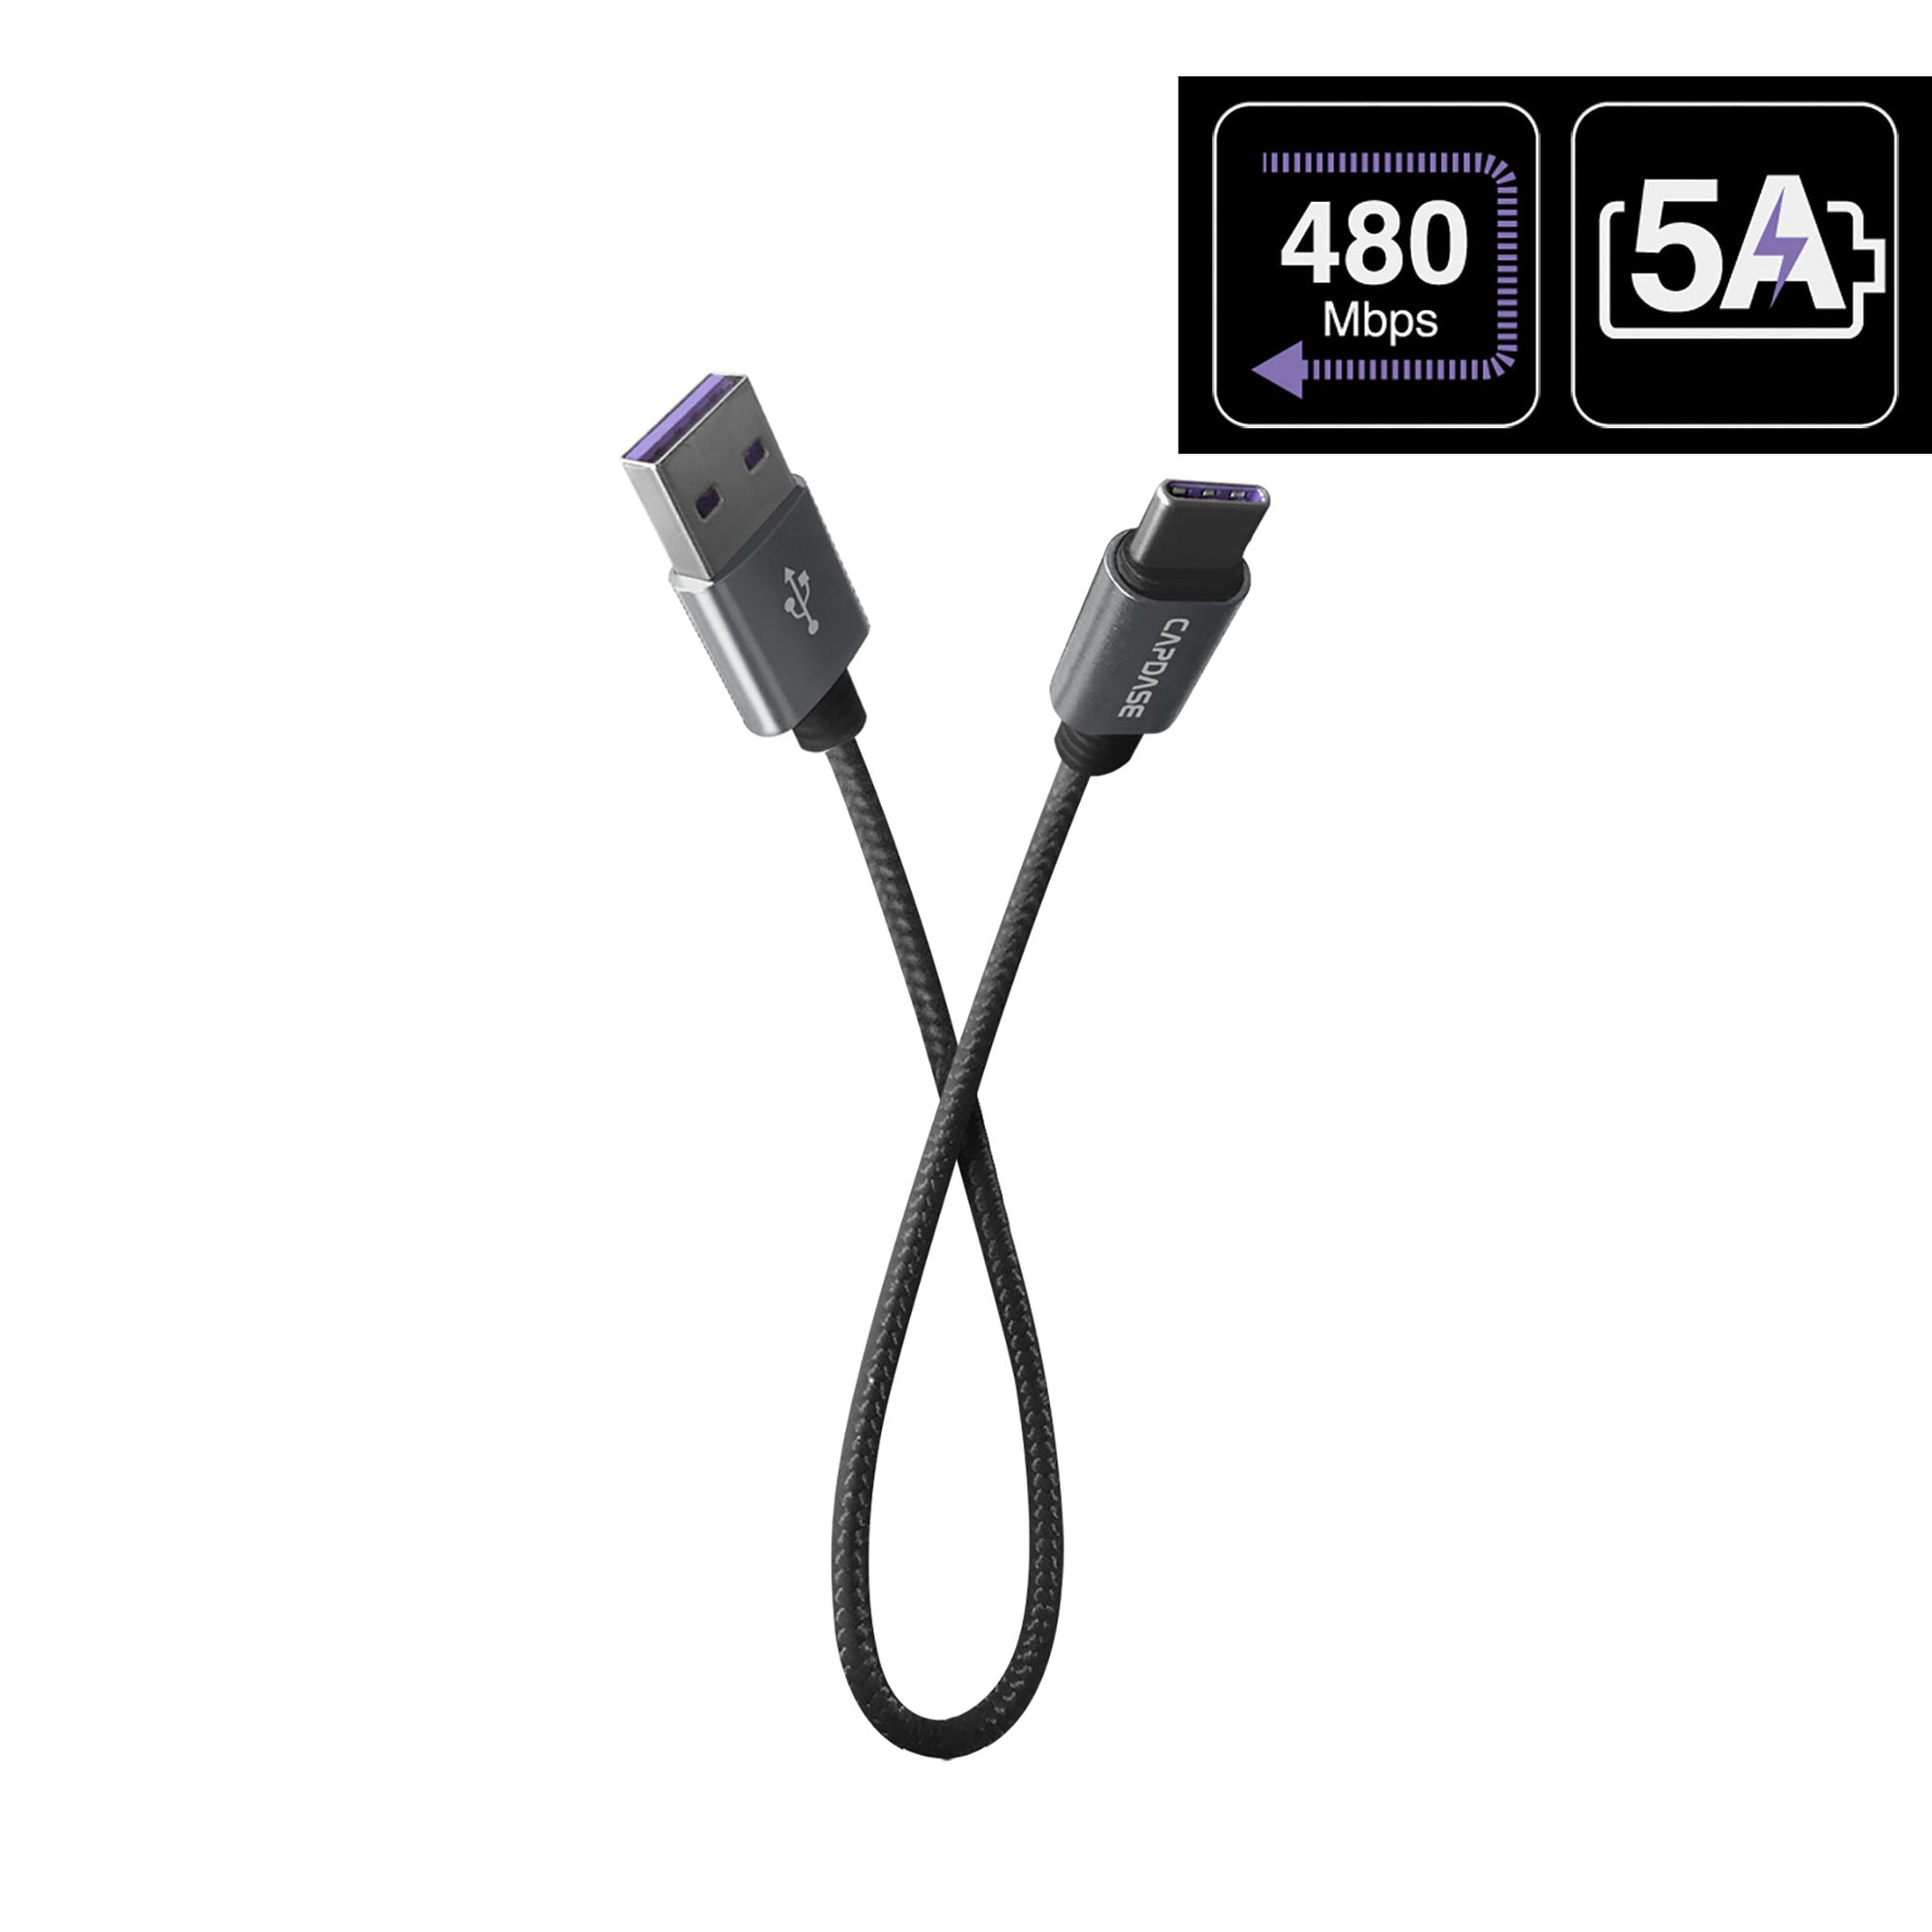 METALLIC CASVQ-5A USB-C To USB-A Sync and Charge Cable 22CM (5A)